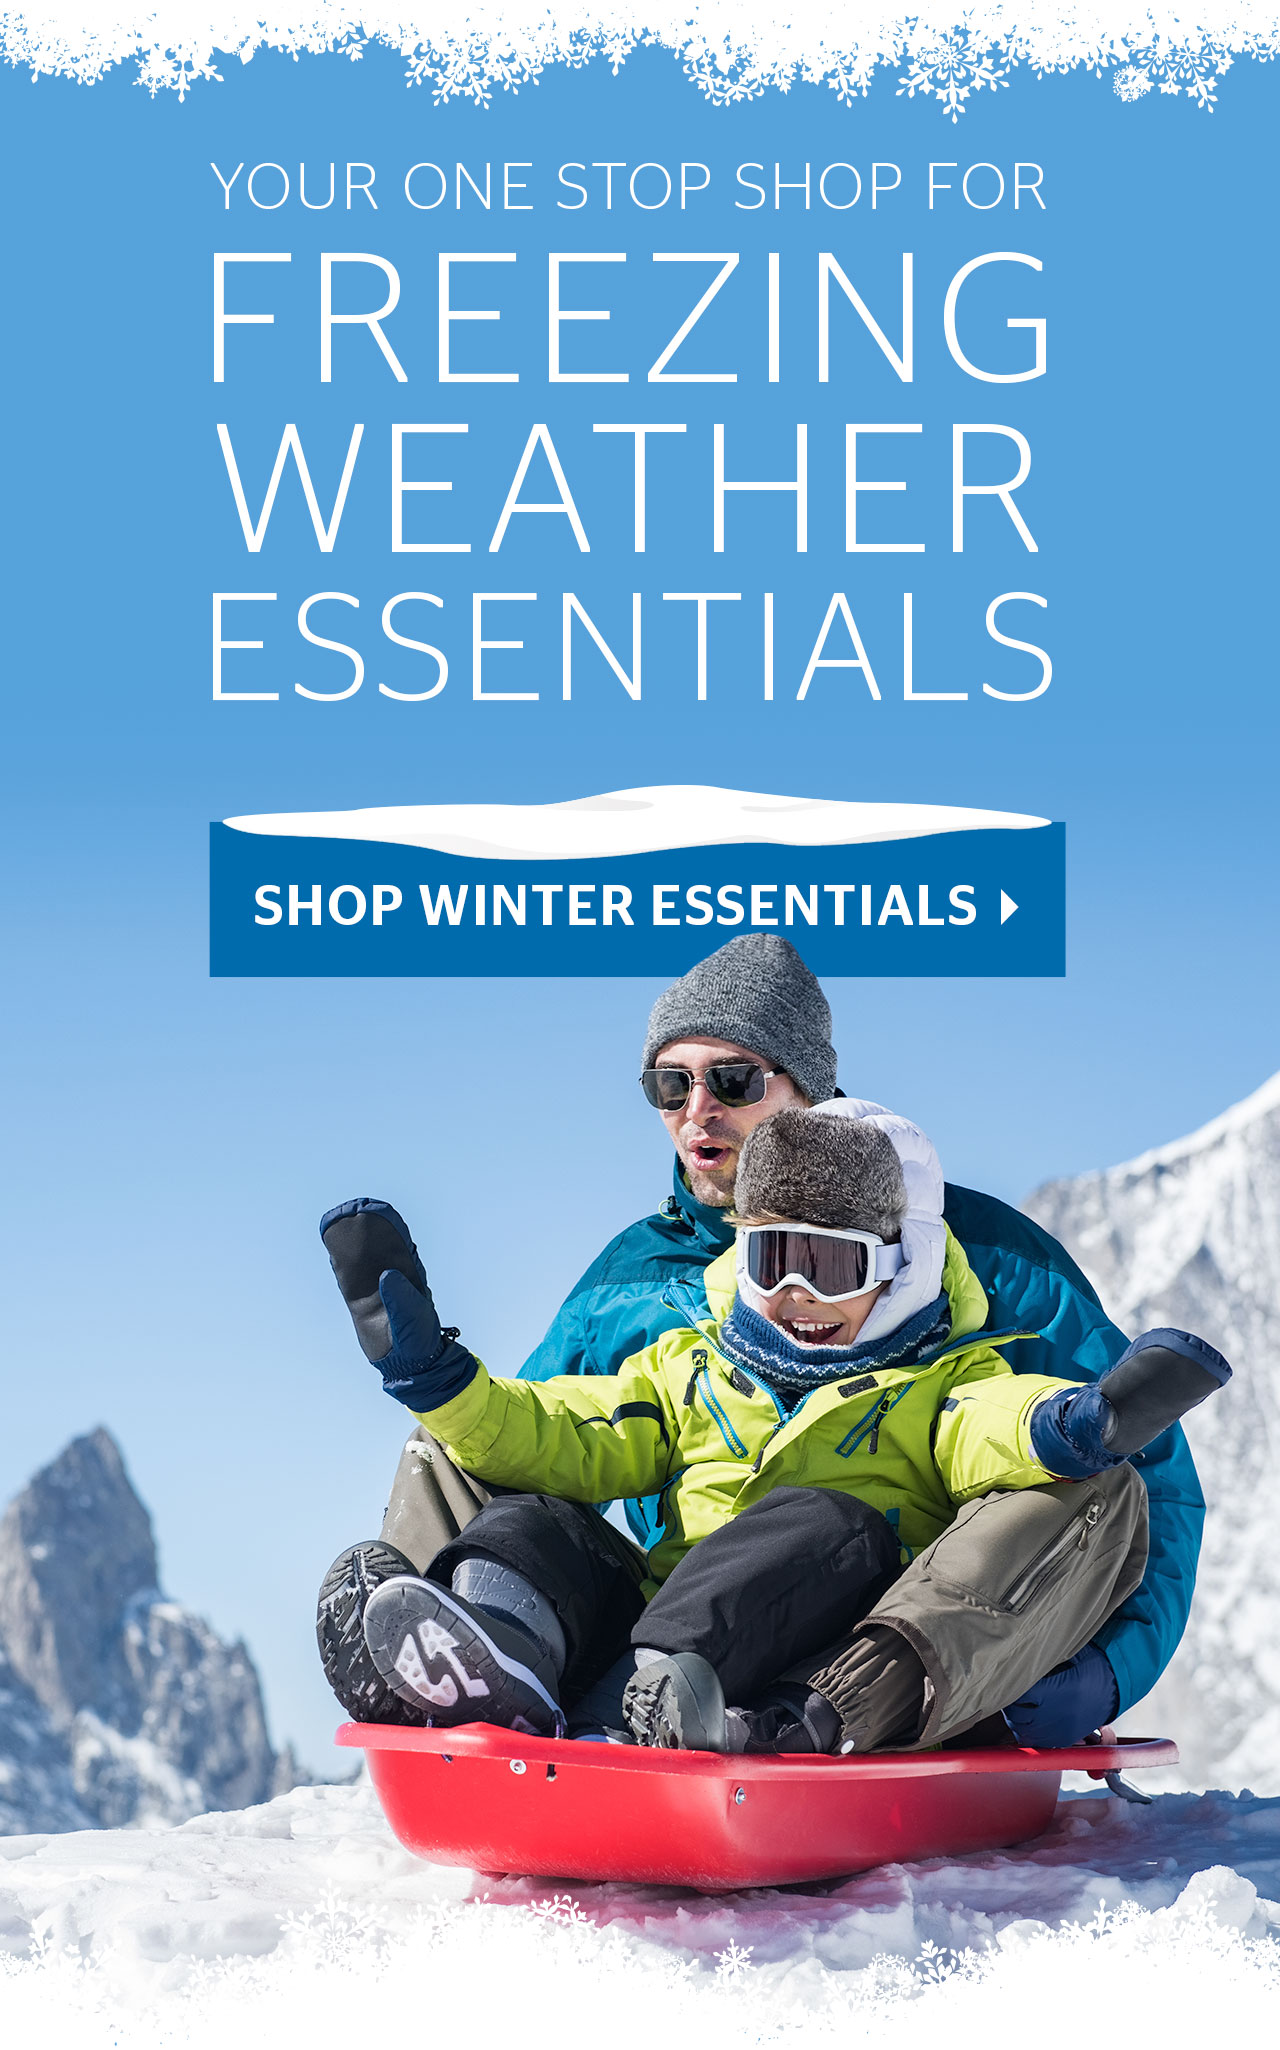 Your one stop shop for freezing winter essentials